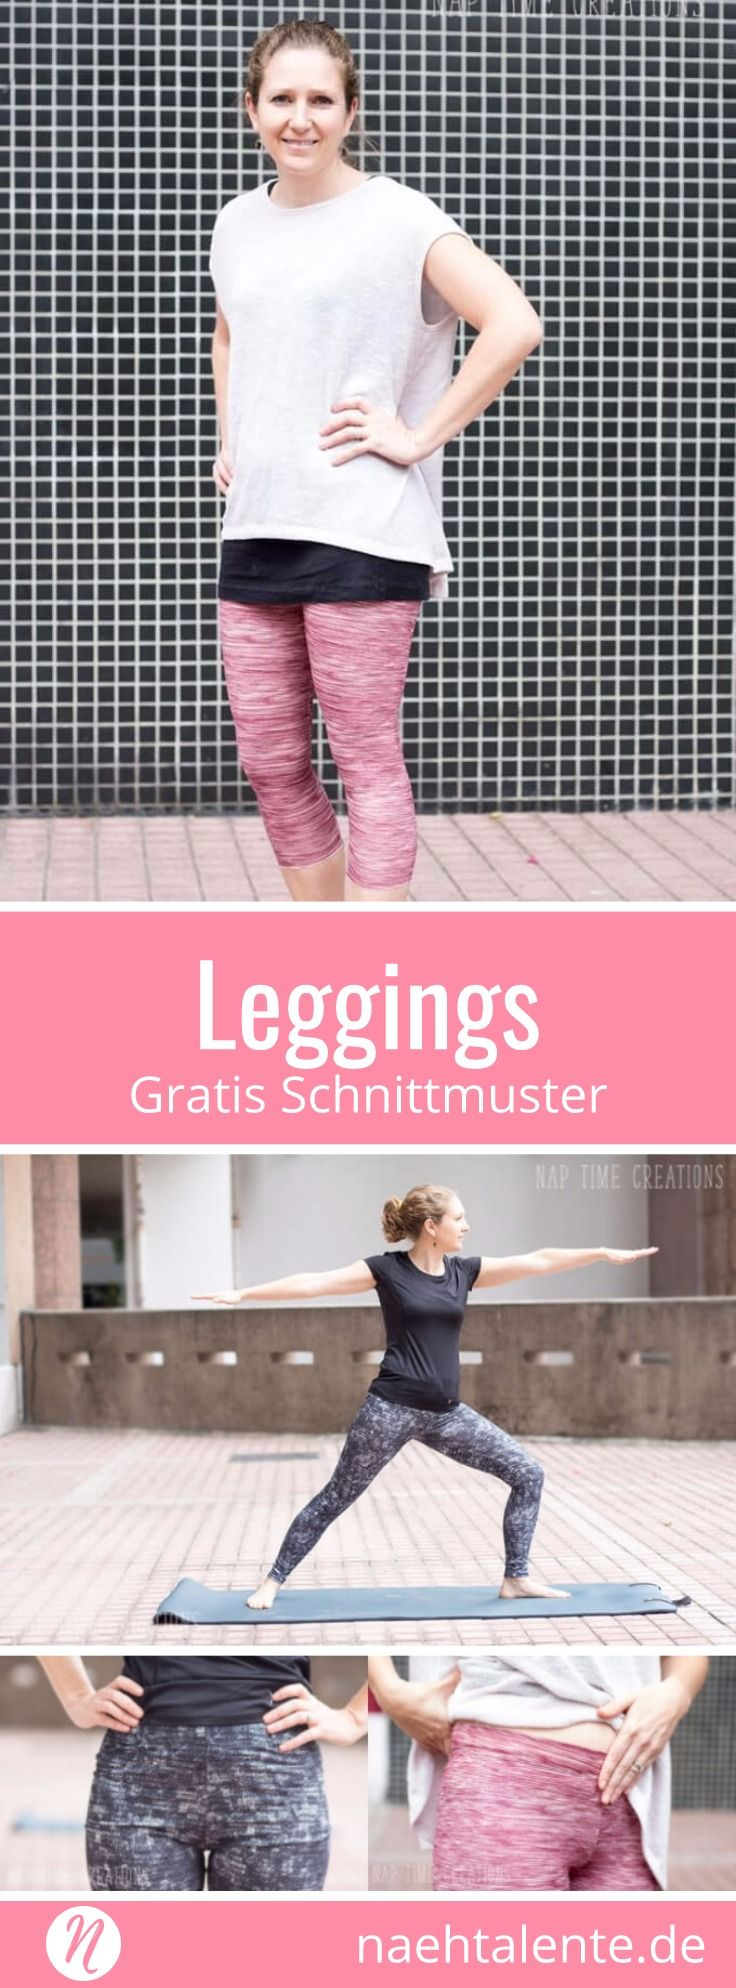 Freebook: Damen-Leggings - Kostenloses Schnittmuster & Nähanleitung ❤ XS - XXL ❤ Nähtalente - Magazin für kostenlose Schnittmuster ❤ Sew your own Leggings with this great free sewing pattern for woman. Size XS - XXL #nähen #freebook #schnittmuster #gratis #nähenmachtglücklich #freesewingpattern #handmade #diy